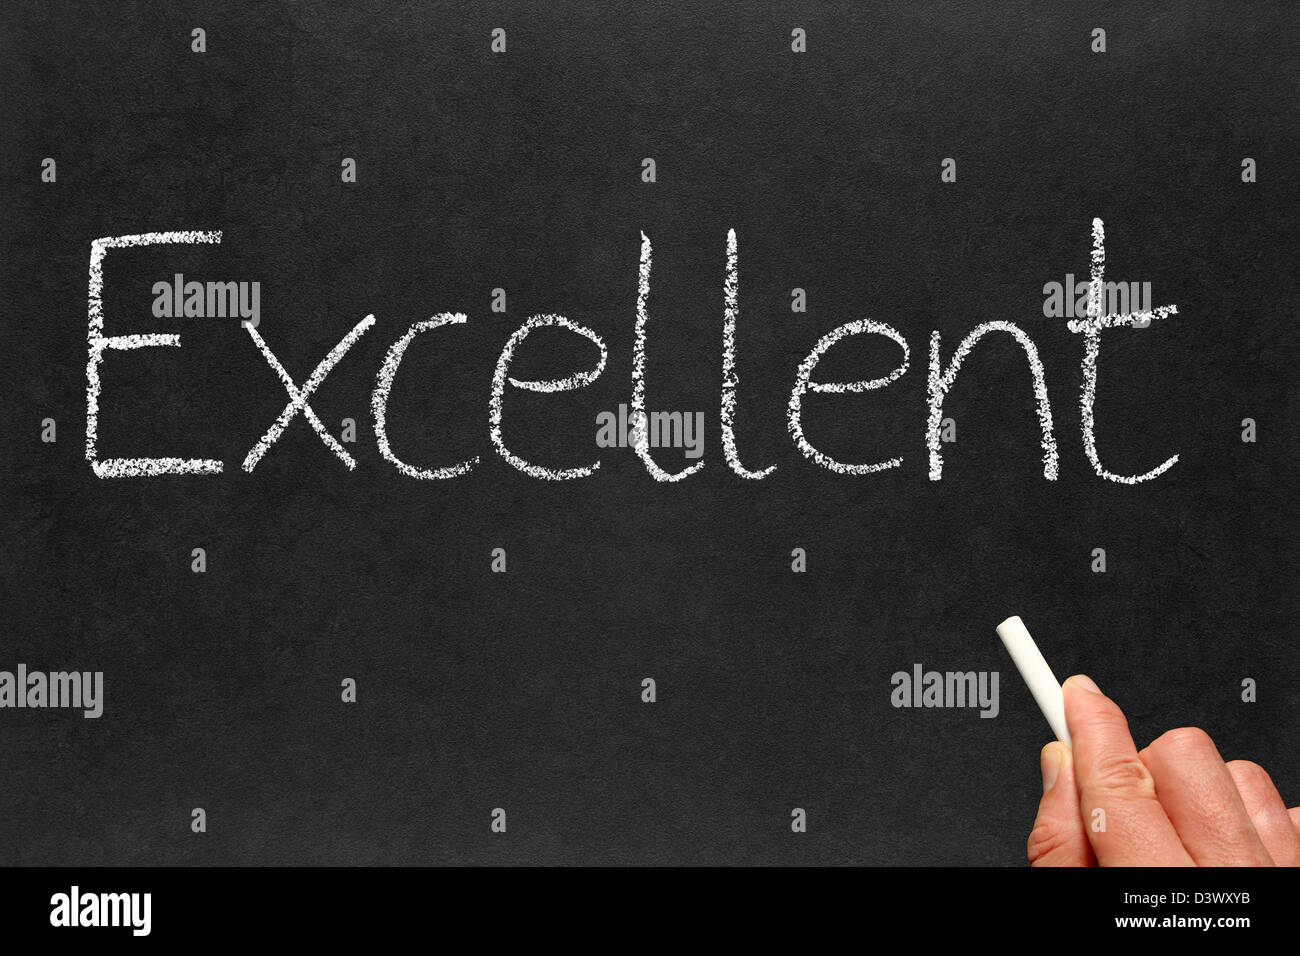 Writing excellent on a blackboard. - Stock Image